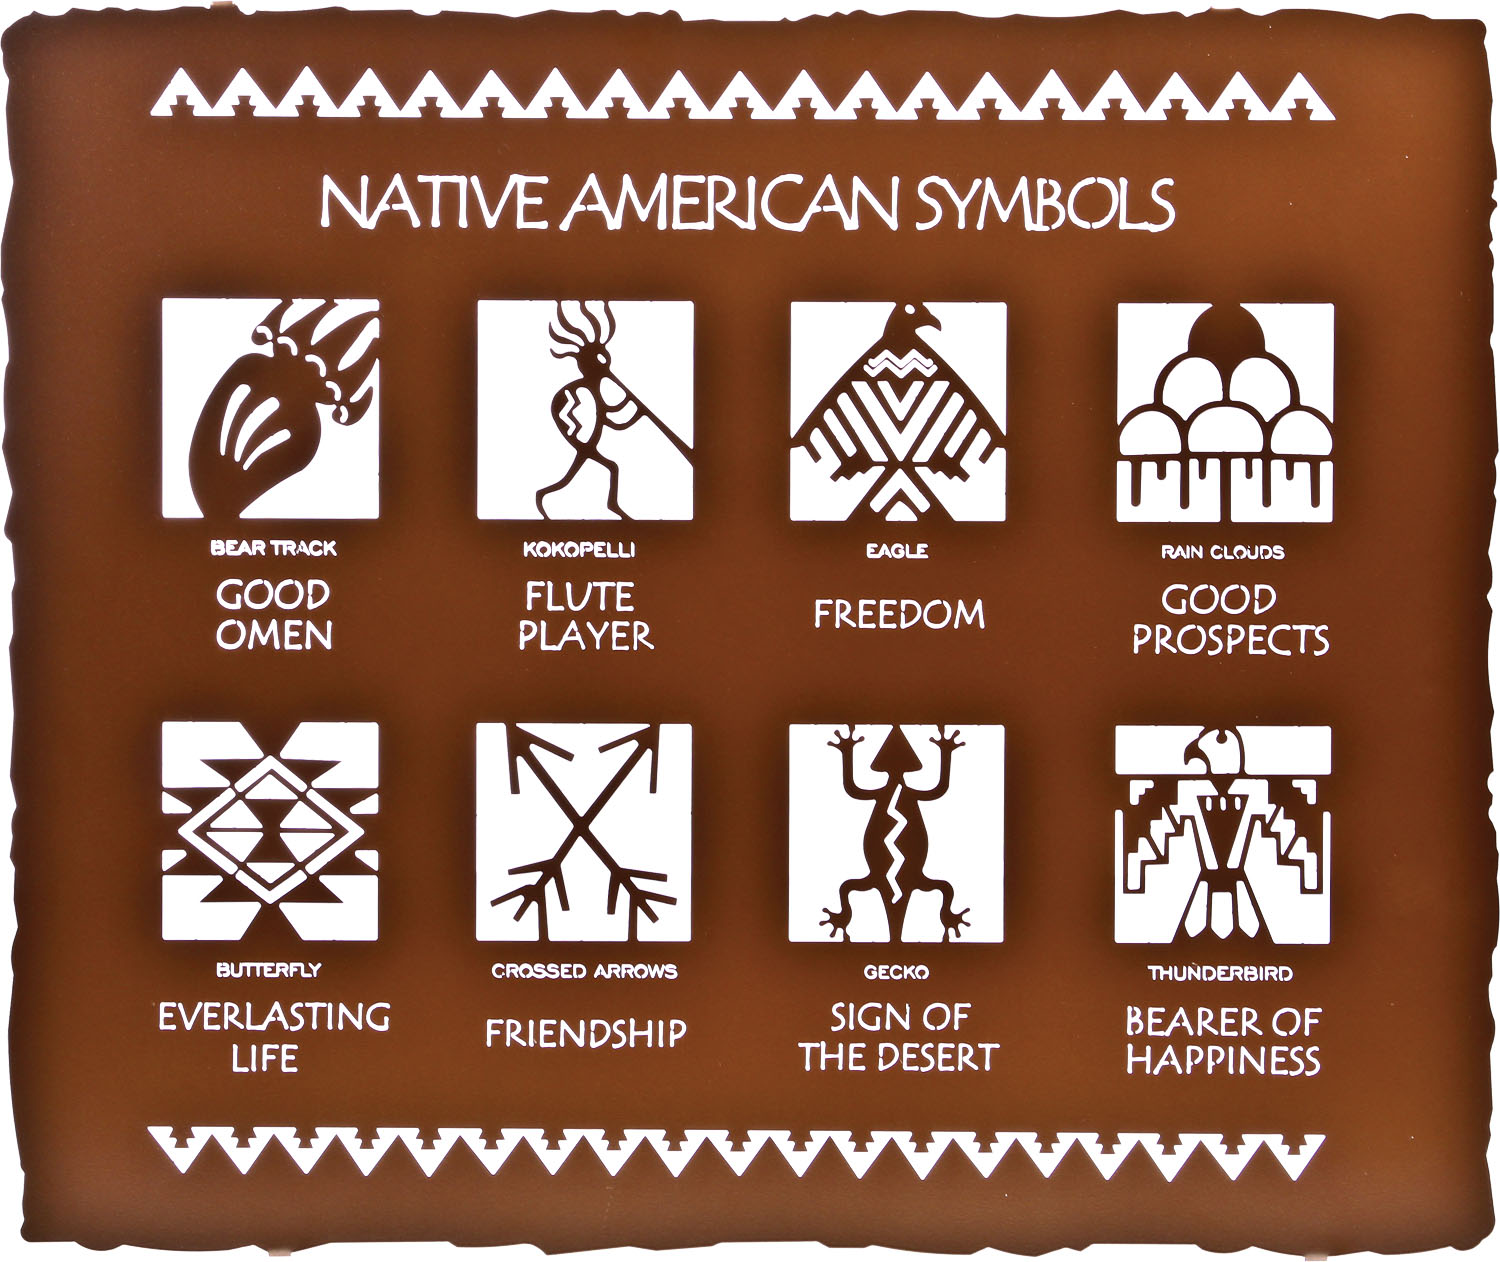 Native American Symbols Eve Warren A History Of